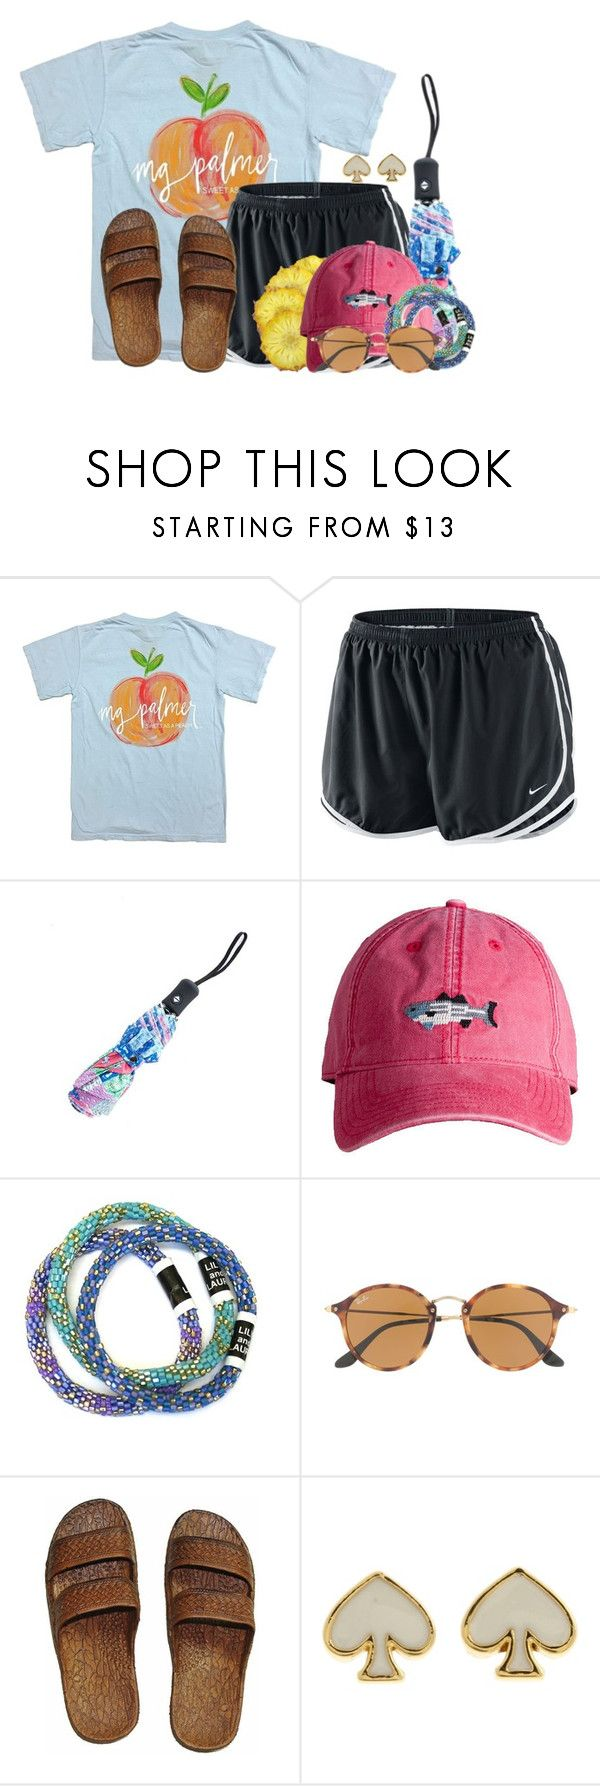 """A little cloudy today ☁️"" by flroasburn ❤ liked on Polyvore featuring NIKE, Ray-Ban and Kate Spade"